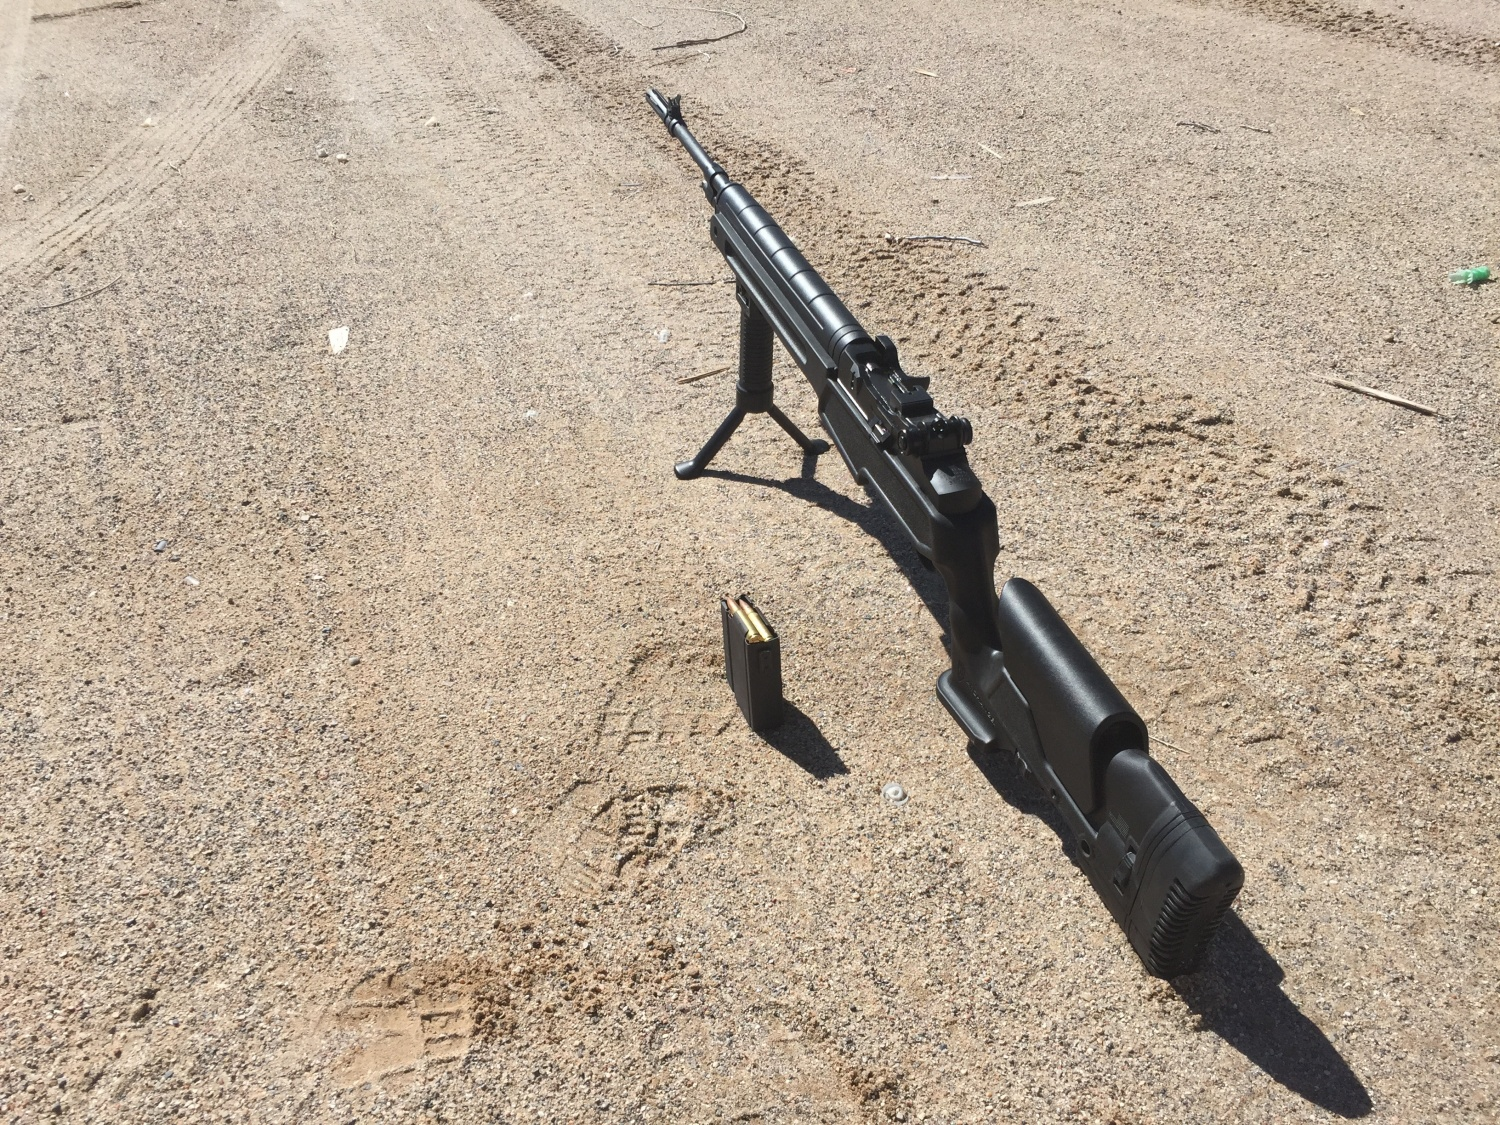 GripPod wasn't the best option for this rifle...